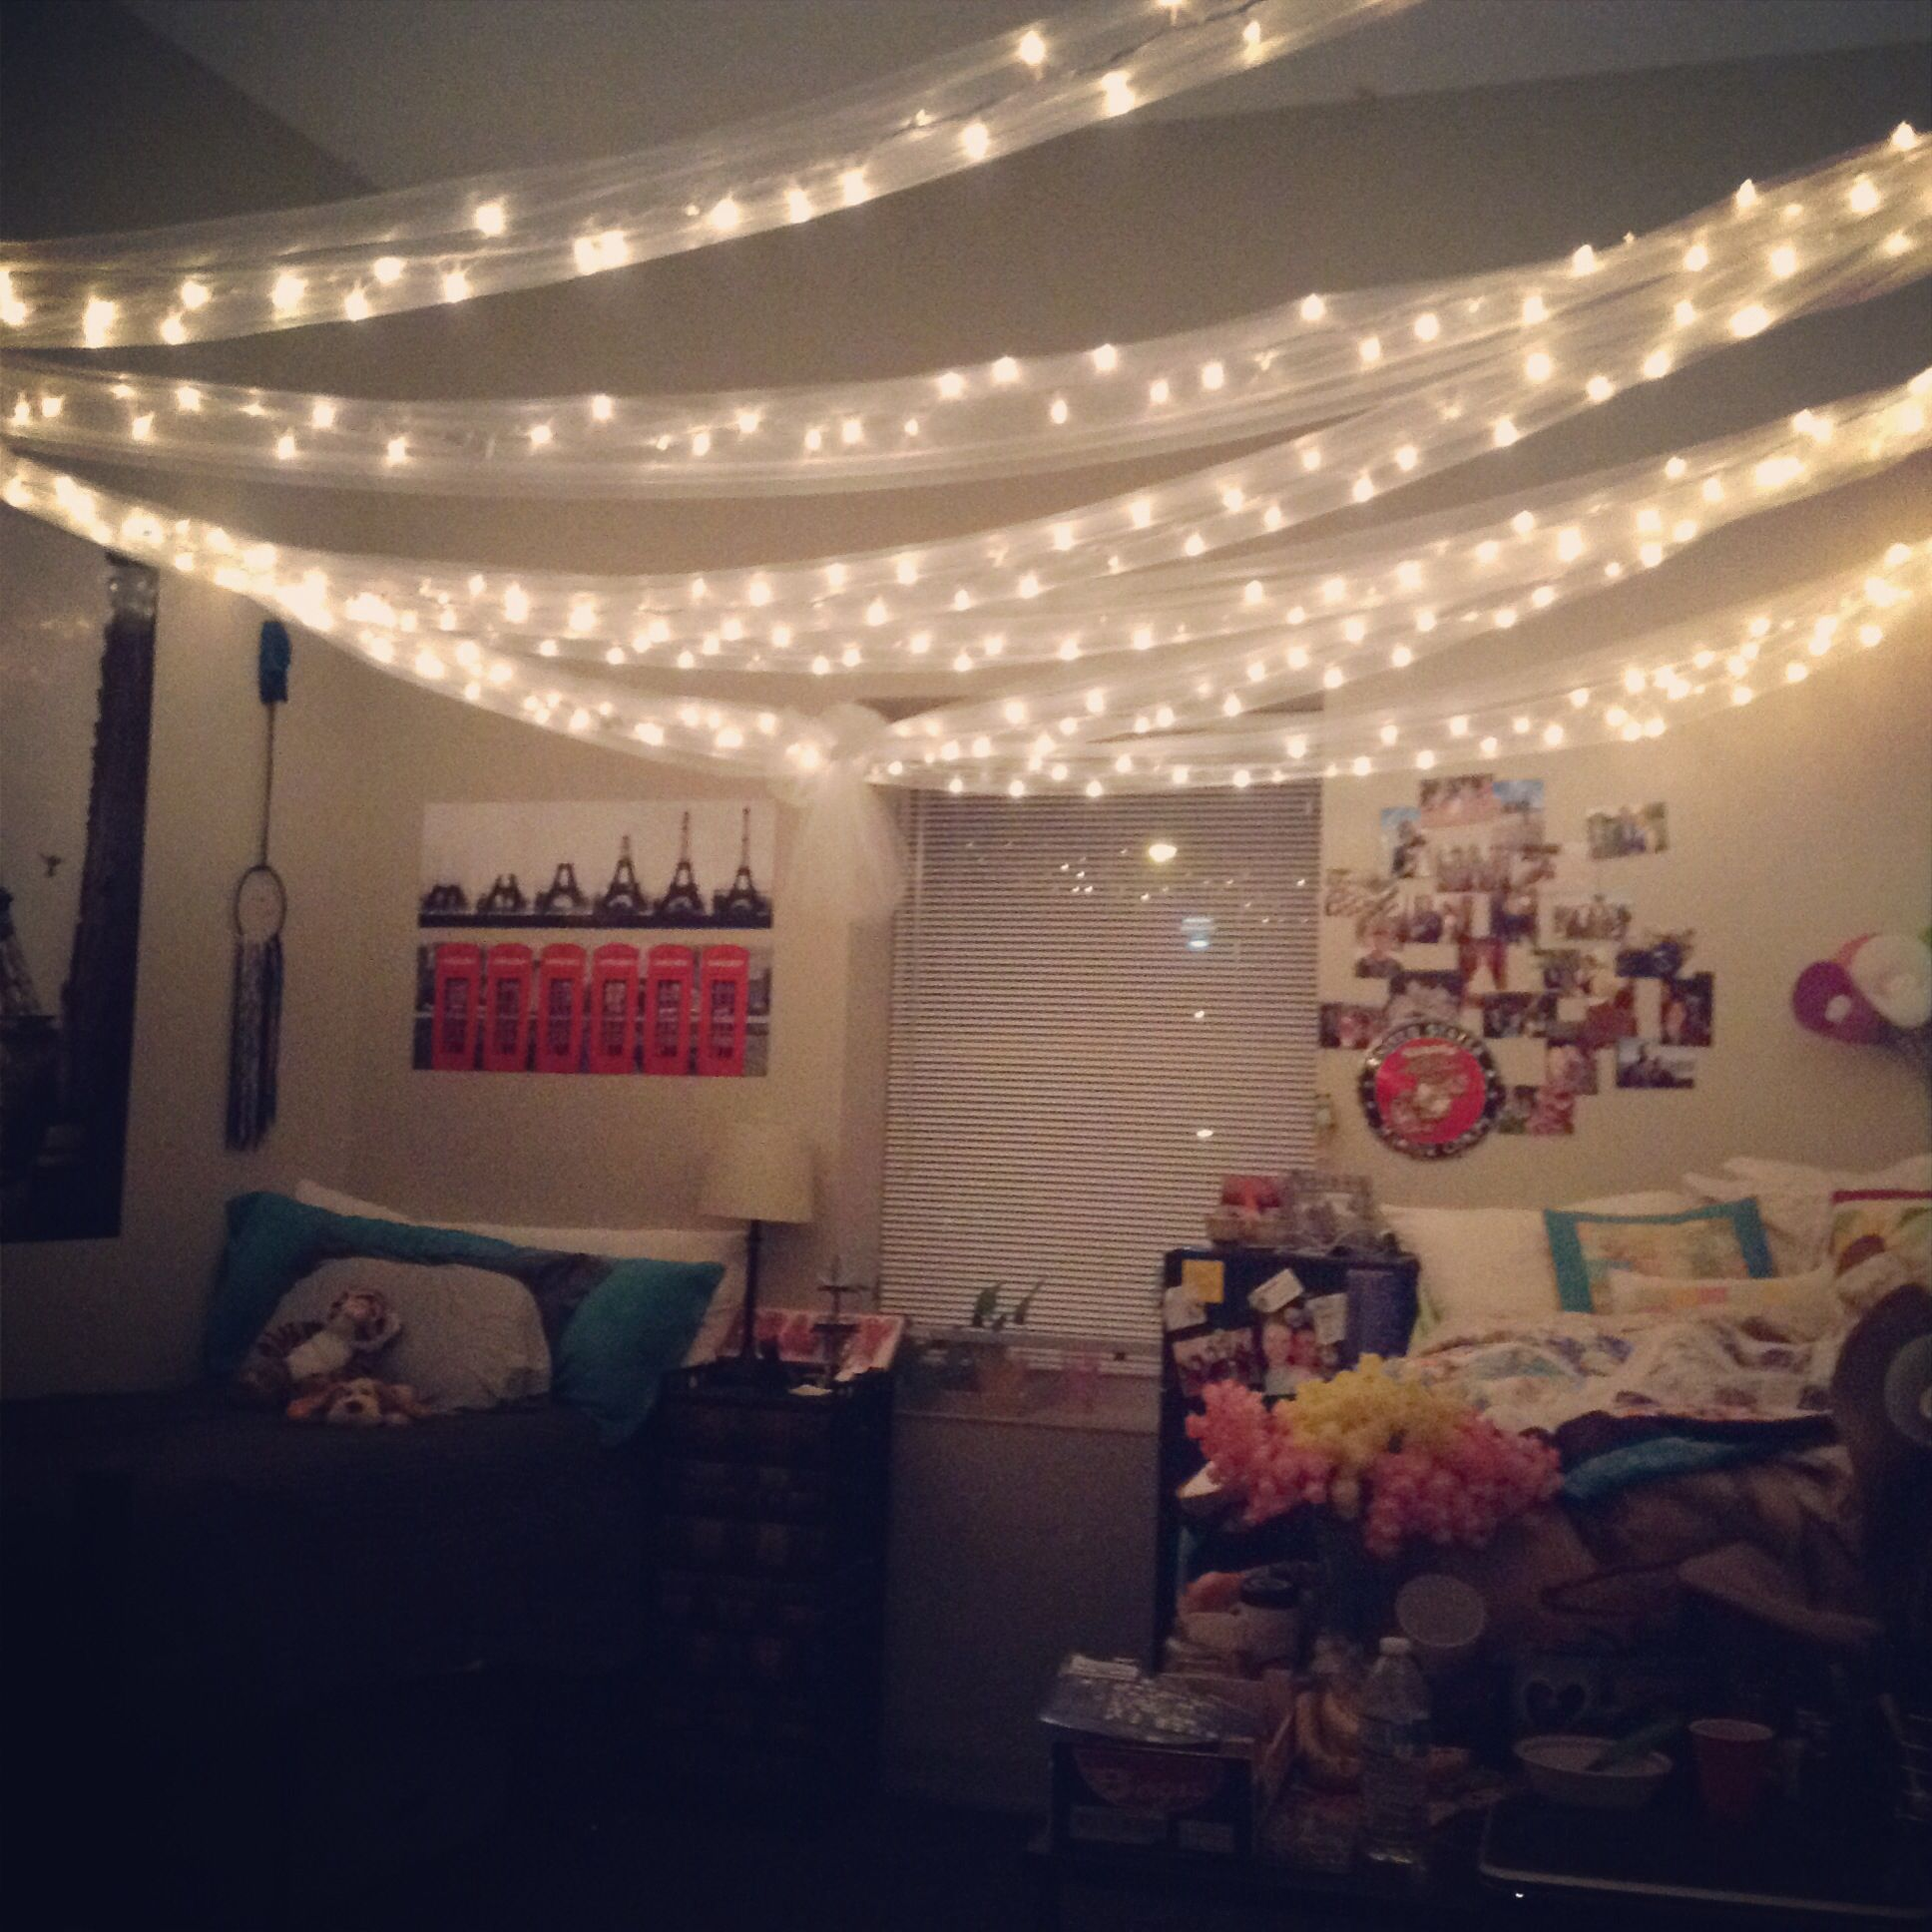 dorm room lighting ideas. christmas lights in a dorm room for decoration my roommate and i put them up lighting ideas